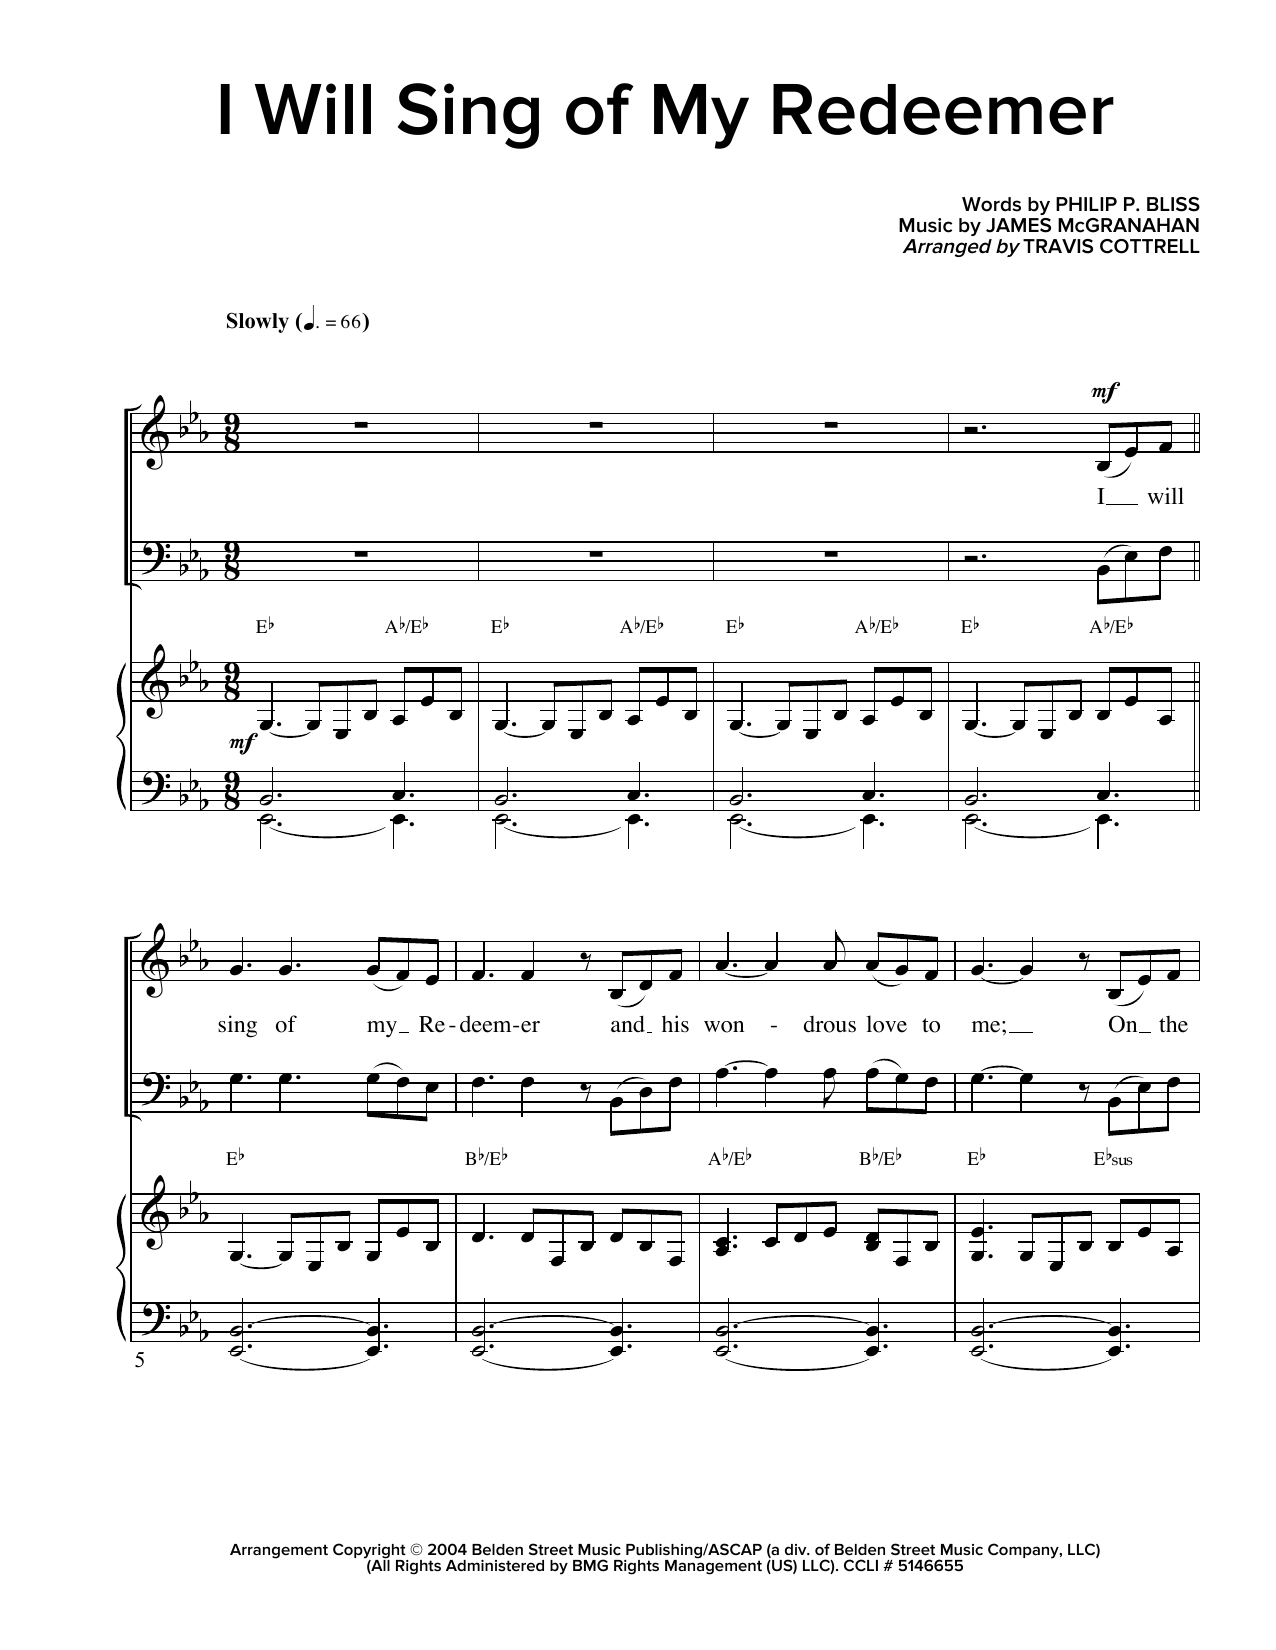 I Will Sing Of My Redeemer (arr. Travis Cottrell) Sheet Music